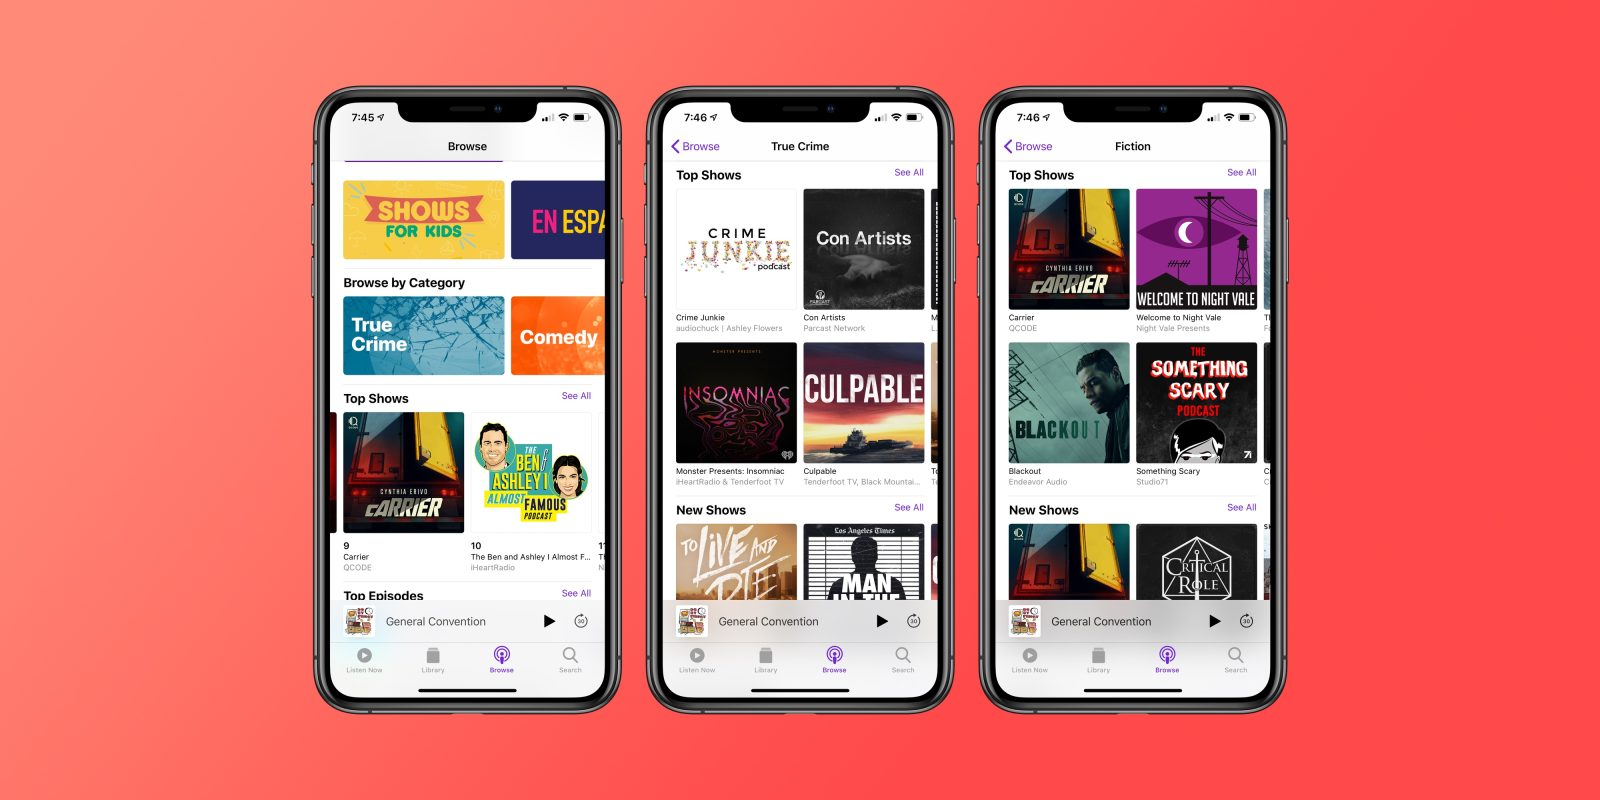 Apple Podcasts adds new top-level categories with charts, curation